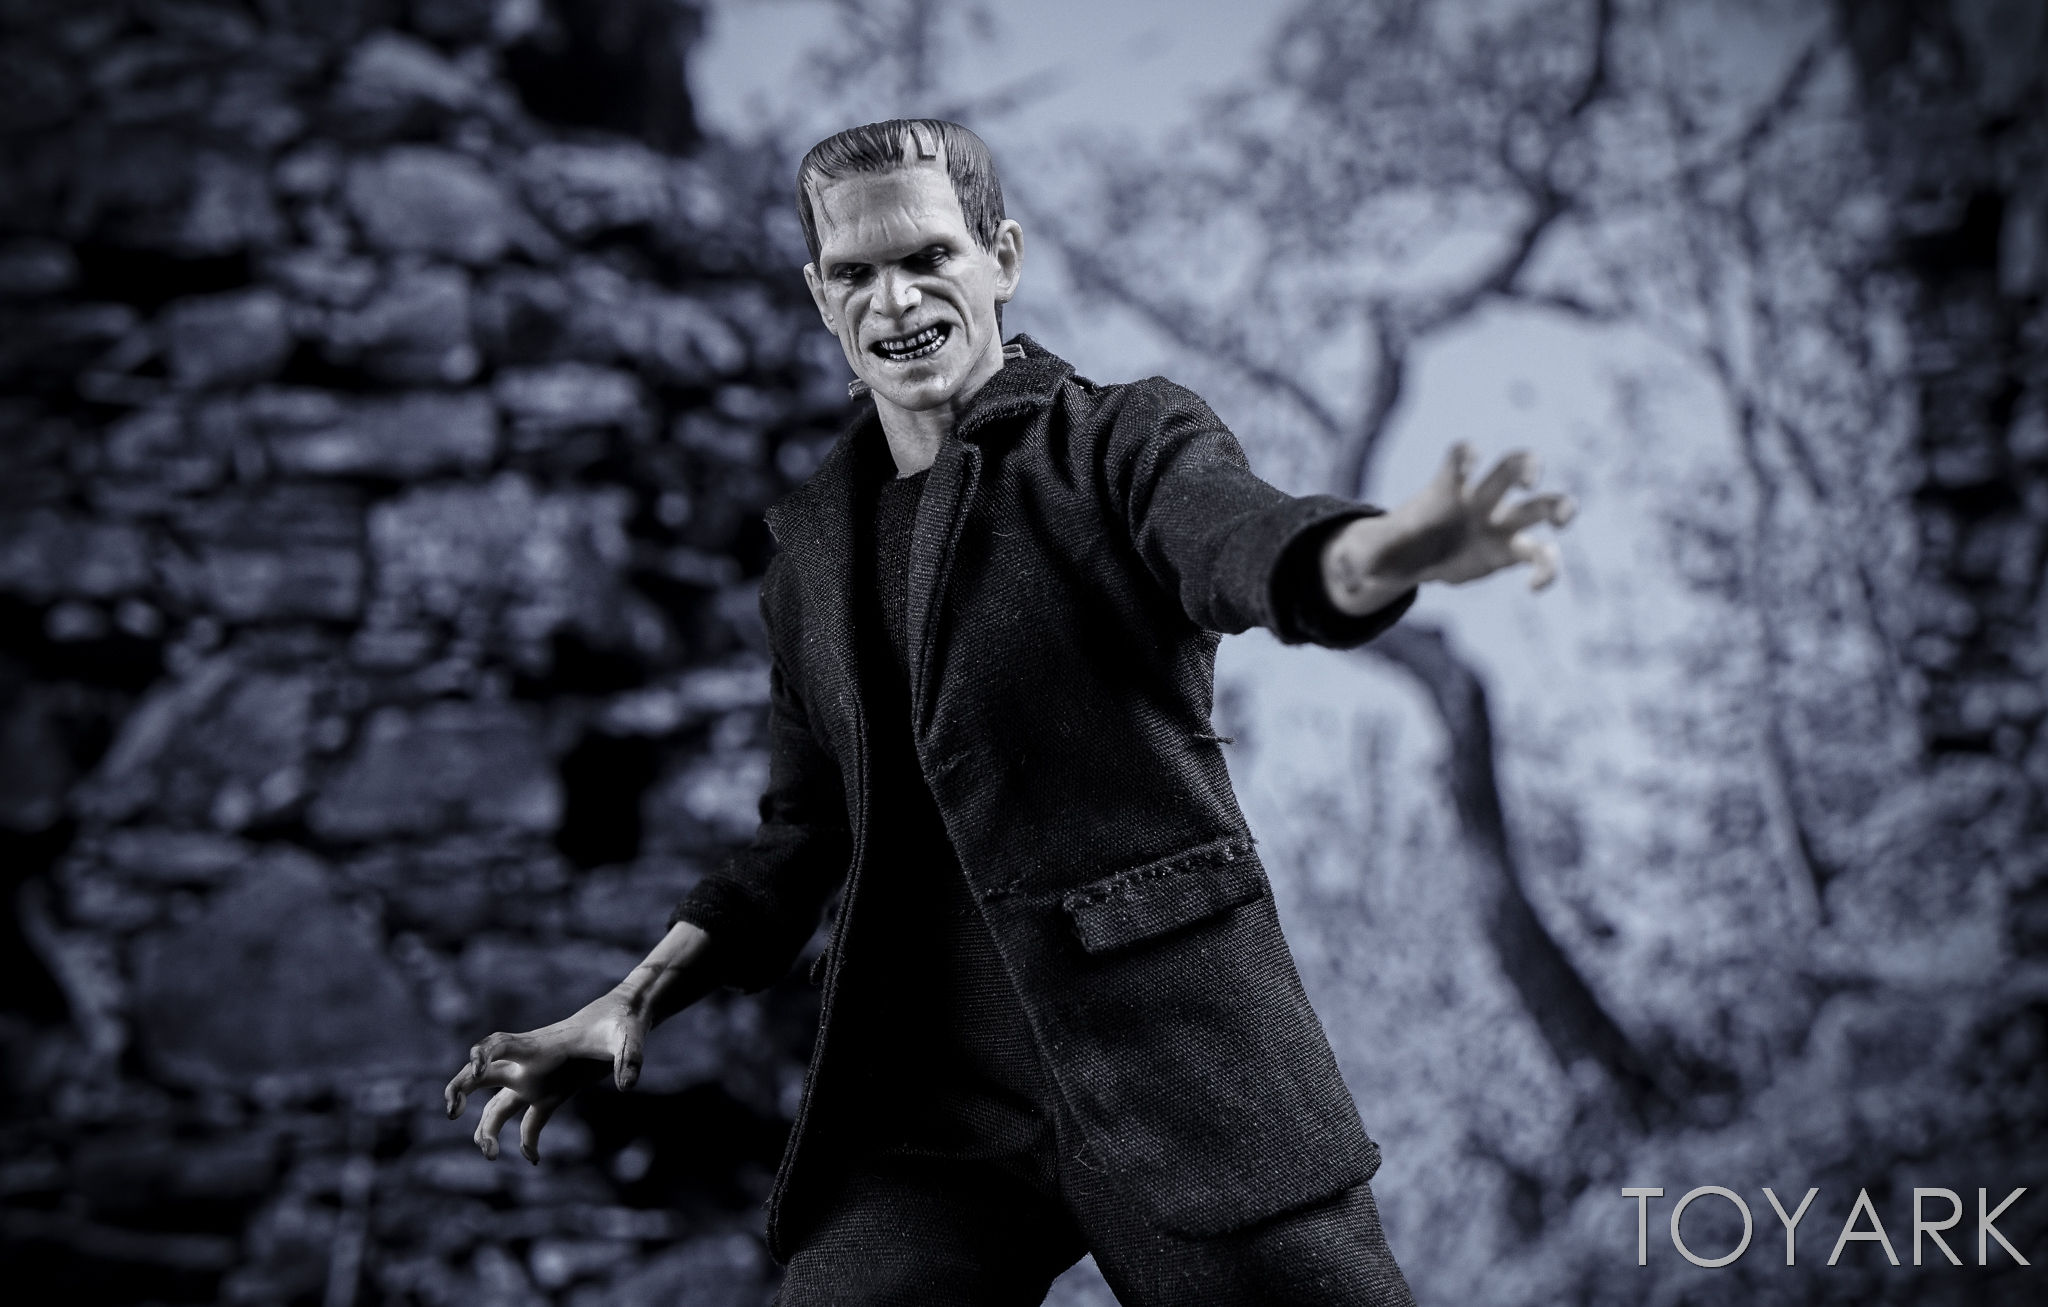 http://news.toyark.com/wp-content/uploads/sites/4/2016/12/Mezco-One12-Collective-Frankenstein-Figure-034.jpg